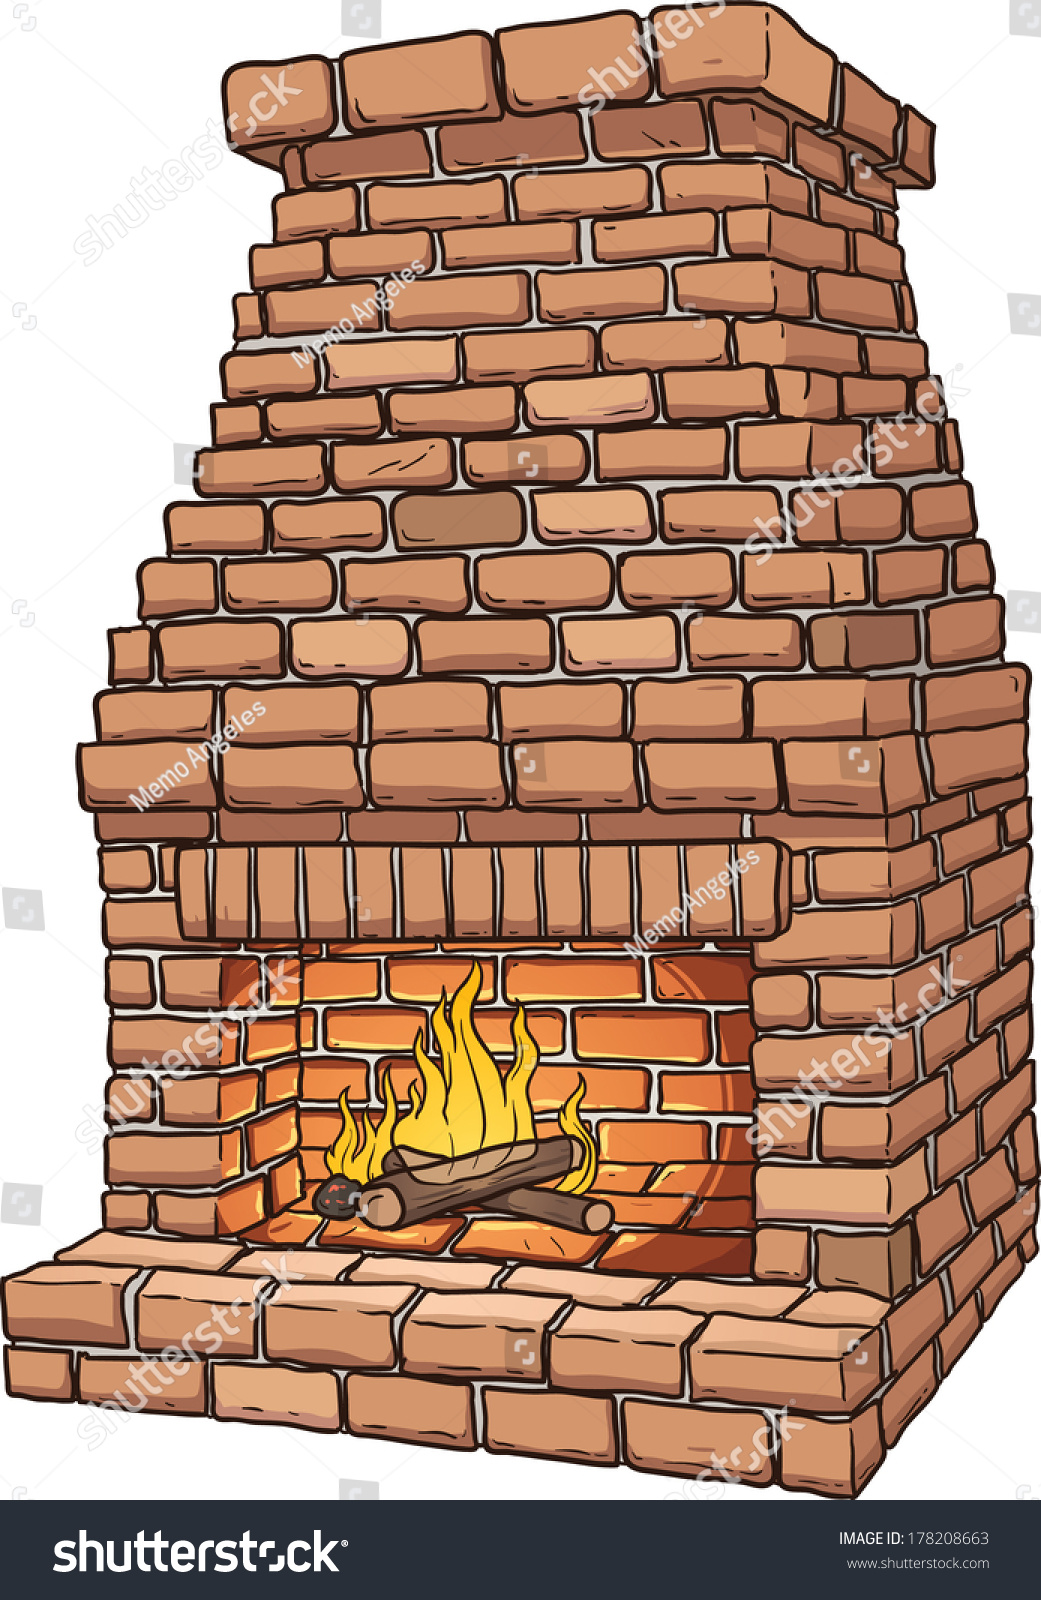 brick fireplace clipart. cartoon brick fireplace vector clip art illustration with simple gradients all in a single clipart